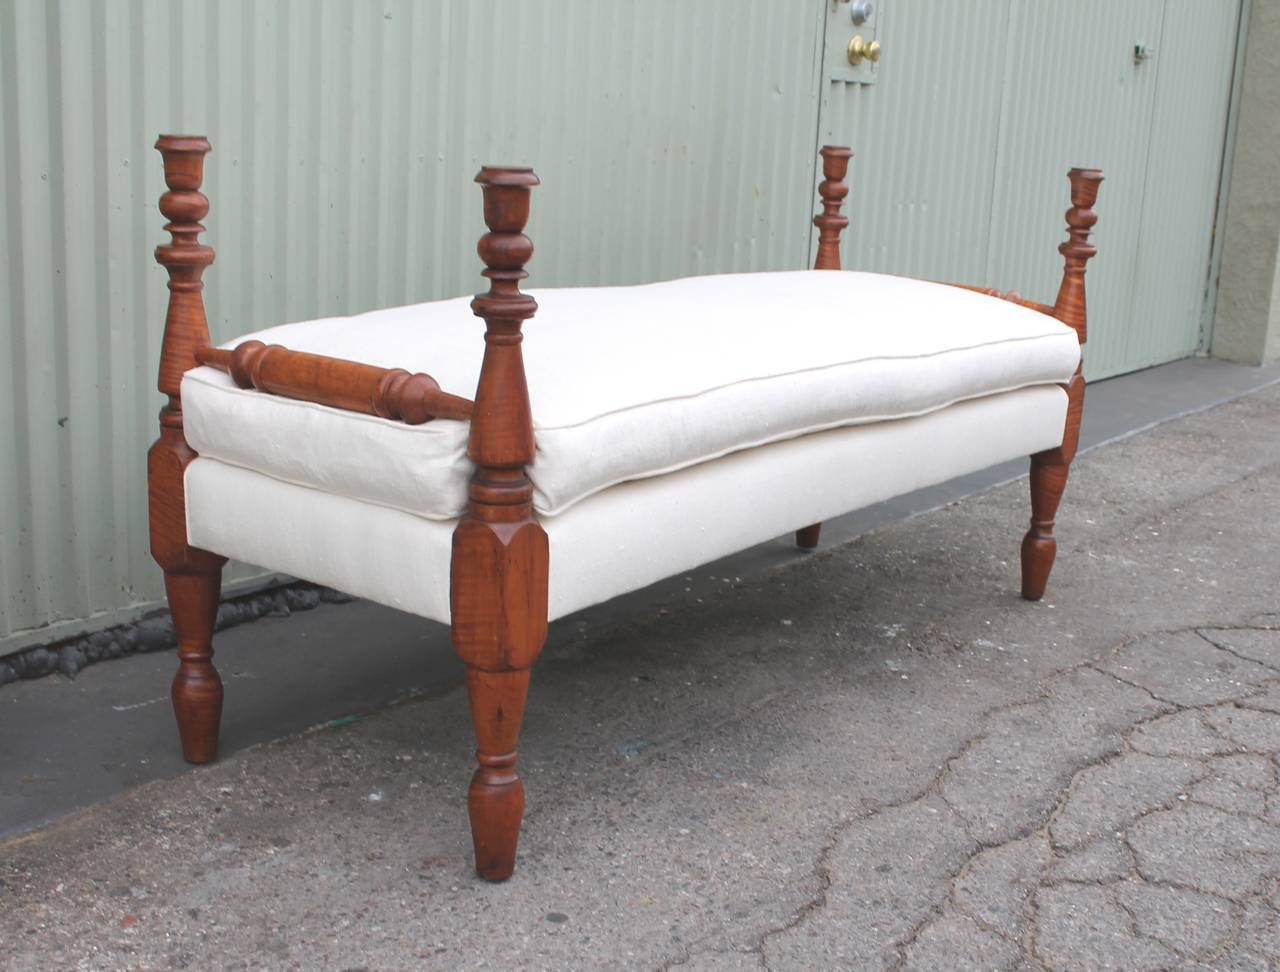 This amazing early 19th century hand-carved daybed in bird's-eye maple is in amazing as found condition. The patina is the very best in this bench frame. This early bed can serve as a bench in a window seat or in front of a bed. The turnings are